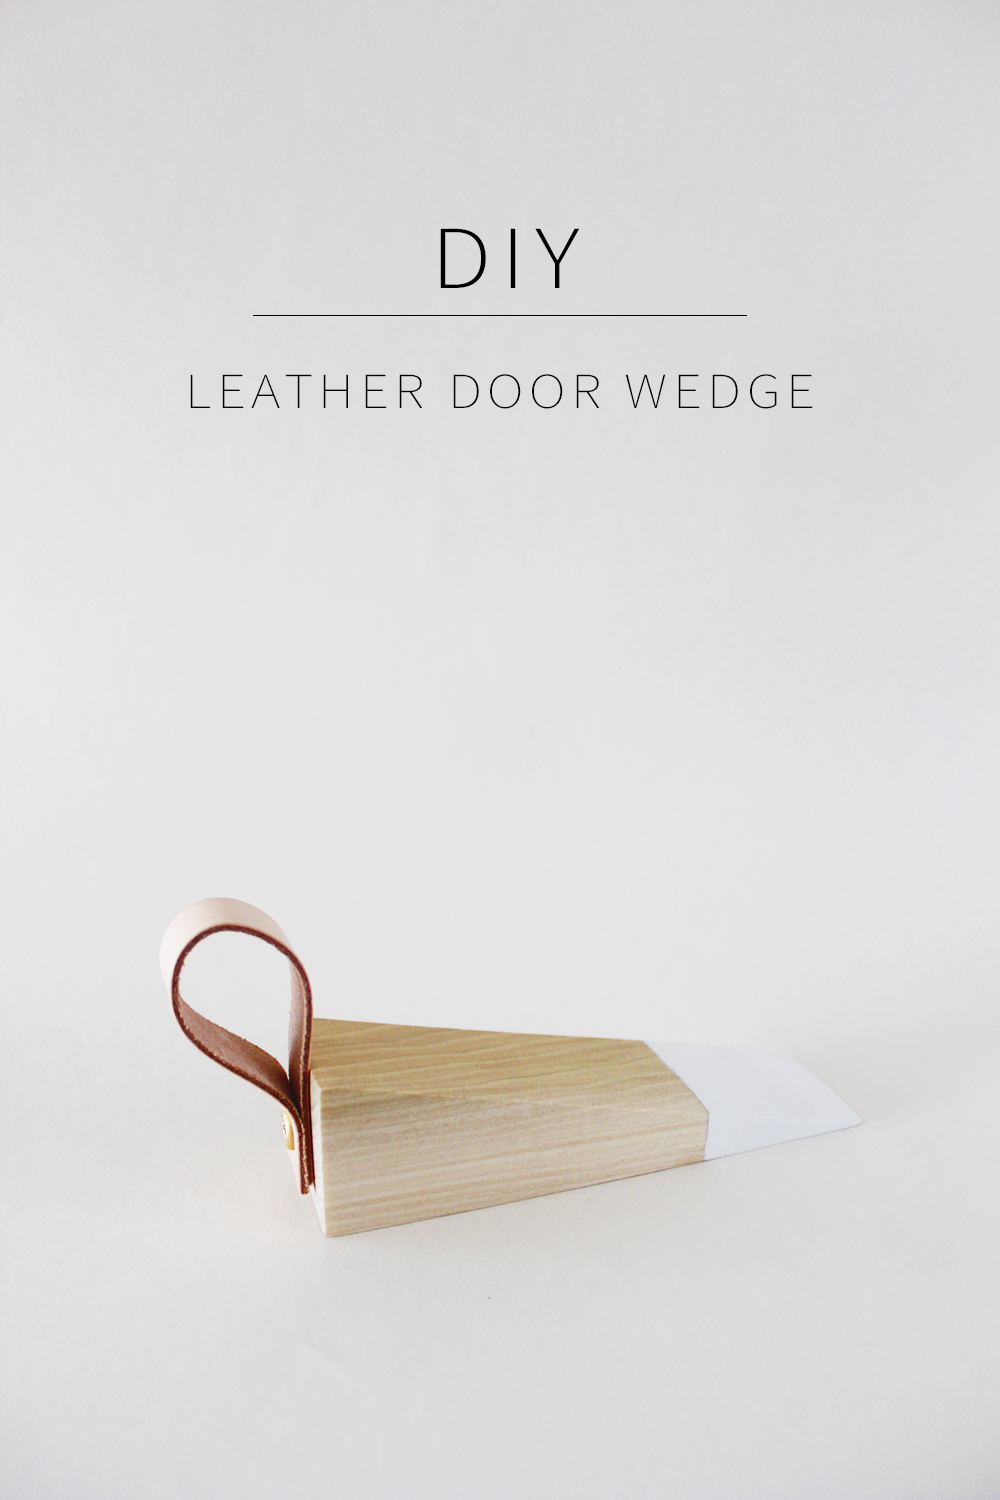 Learn how to make a gorgeous DIY door stop wedge with this tutorial from Annabode